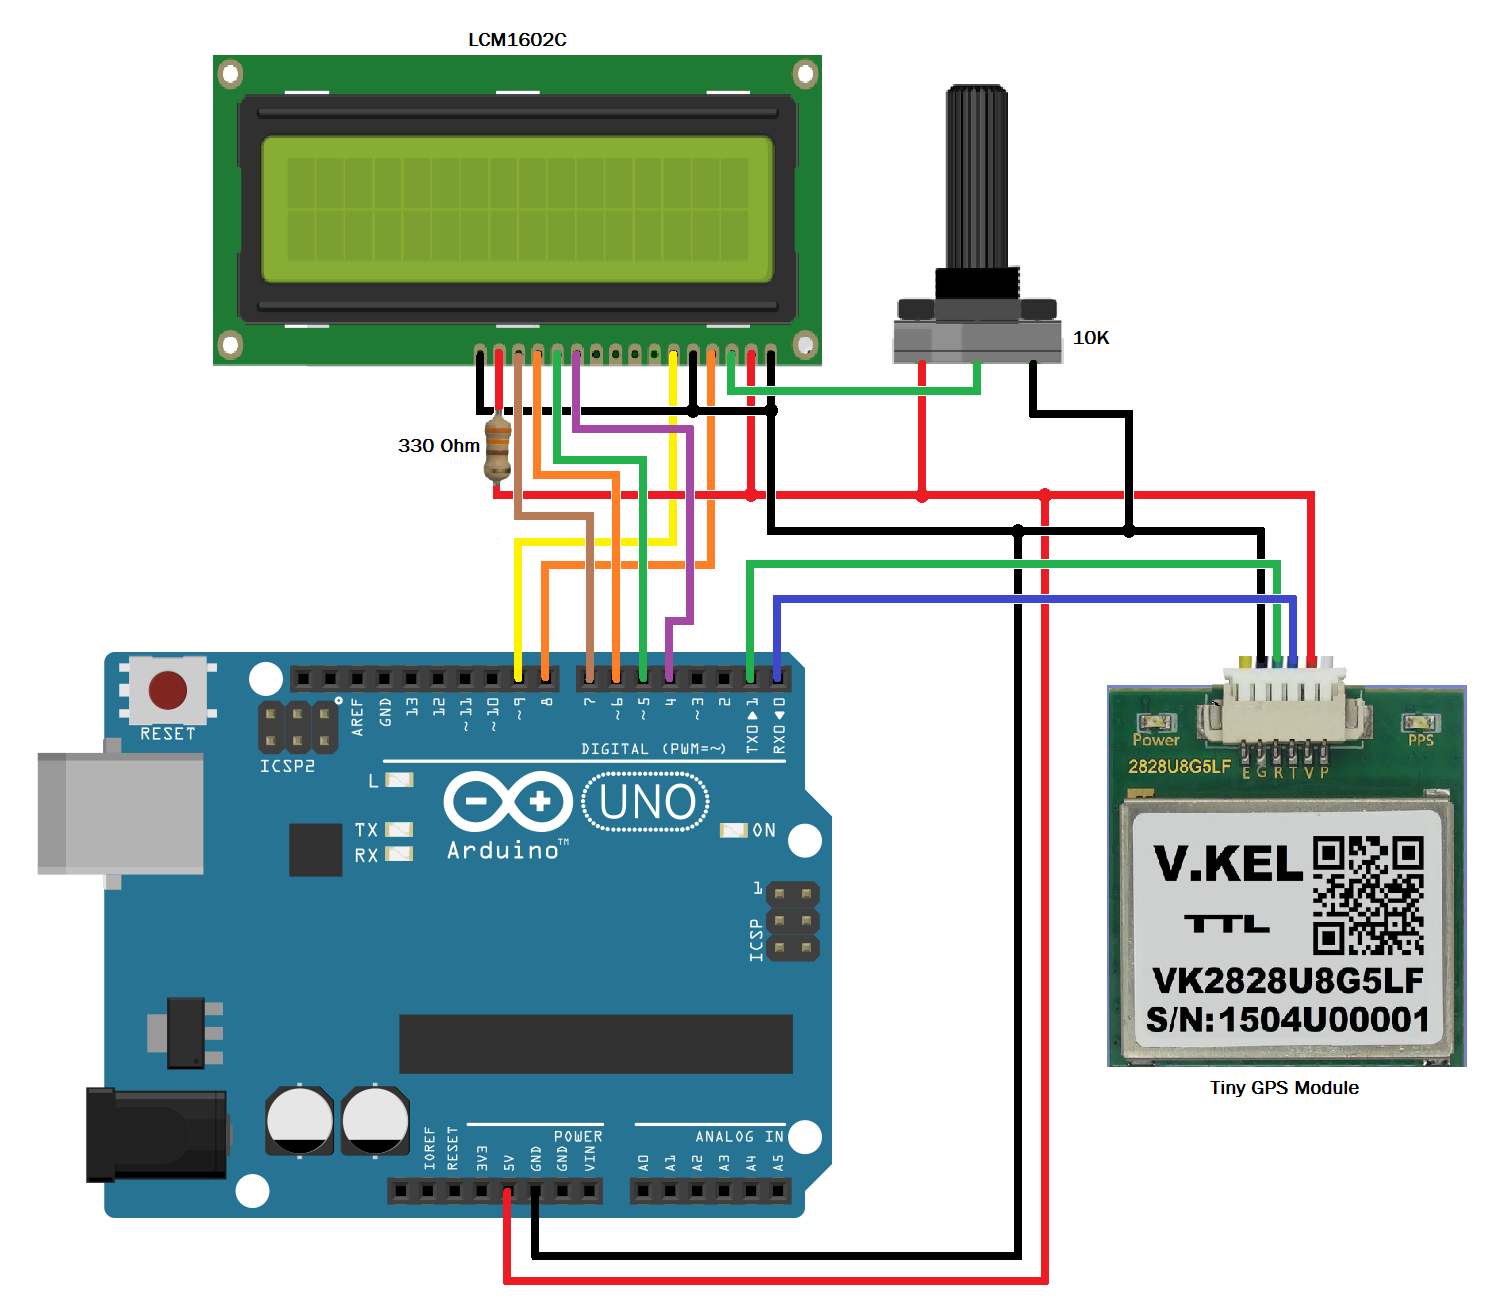 Nico s hobbies arduino and the tinygps module